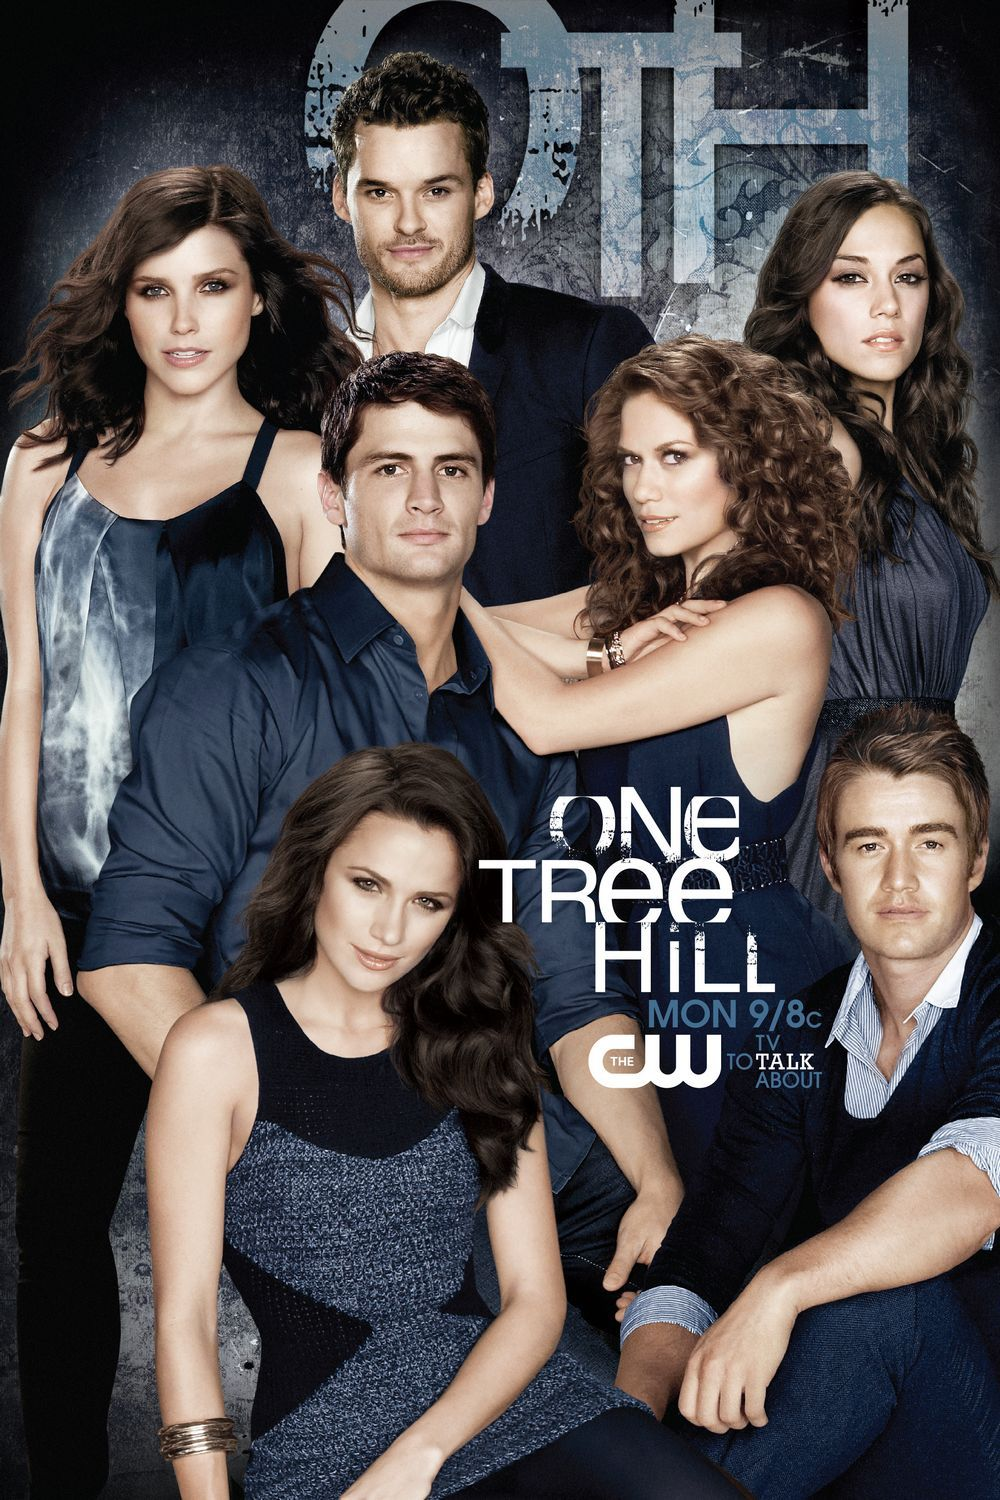 watch series One Tree Hill Season One episode 1 watchseries